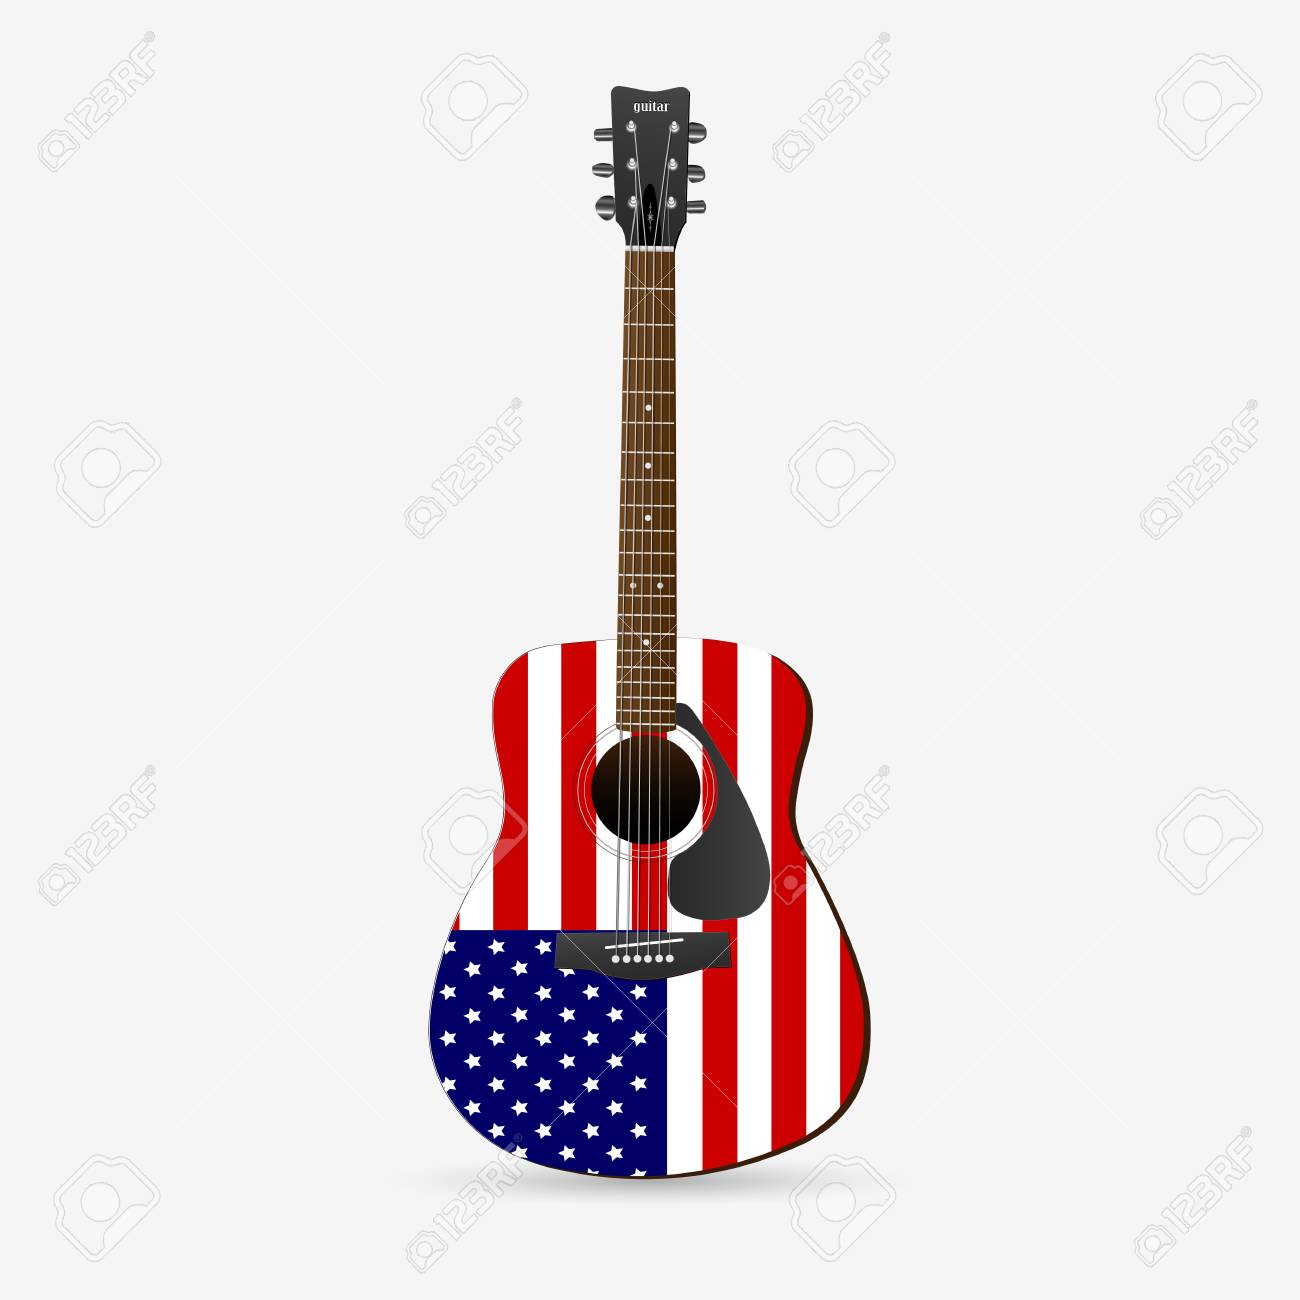 Illustration of a red, white and blue guitar isolated on a white background. - 97016107